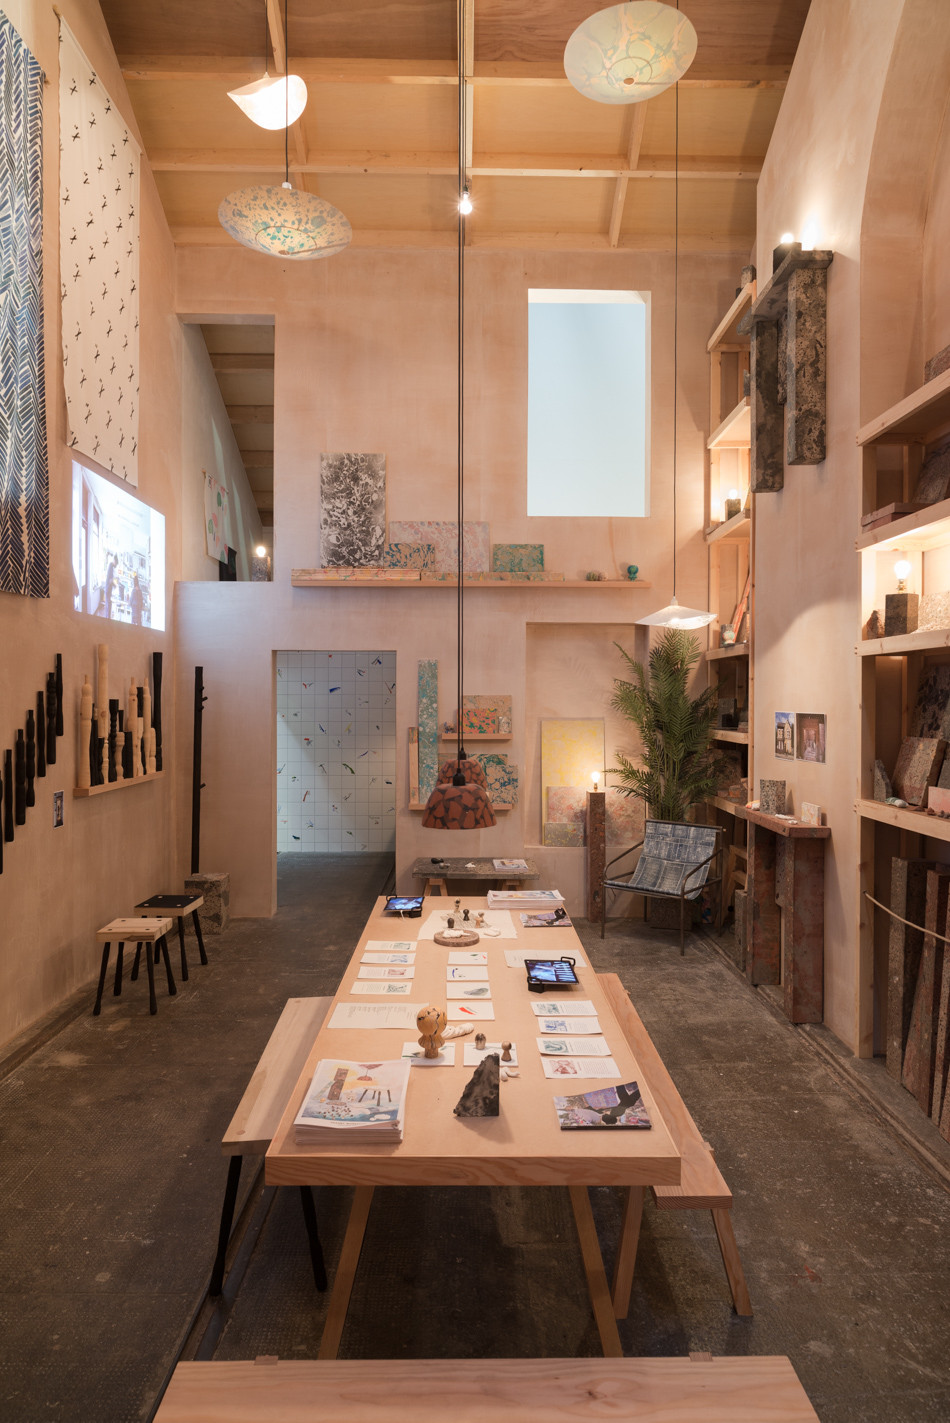 Assemble 'Granby Workshop' and Turner Prize Installation at Tramway, Glasgow